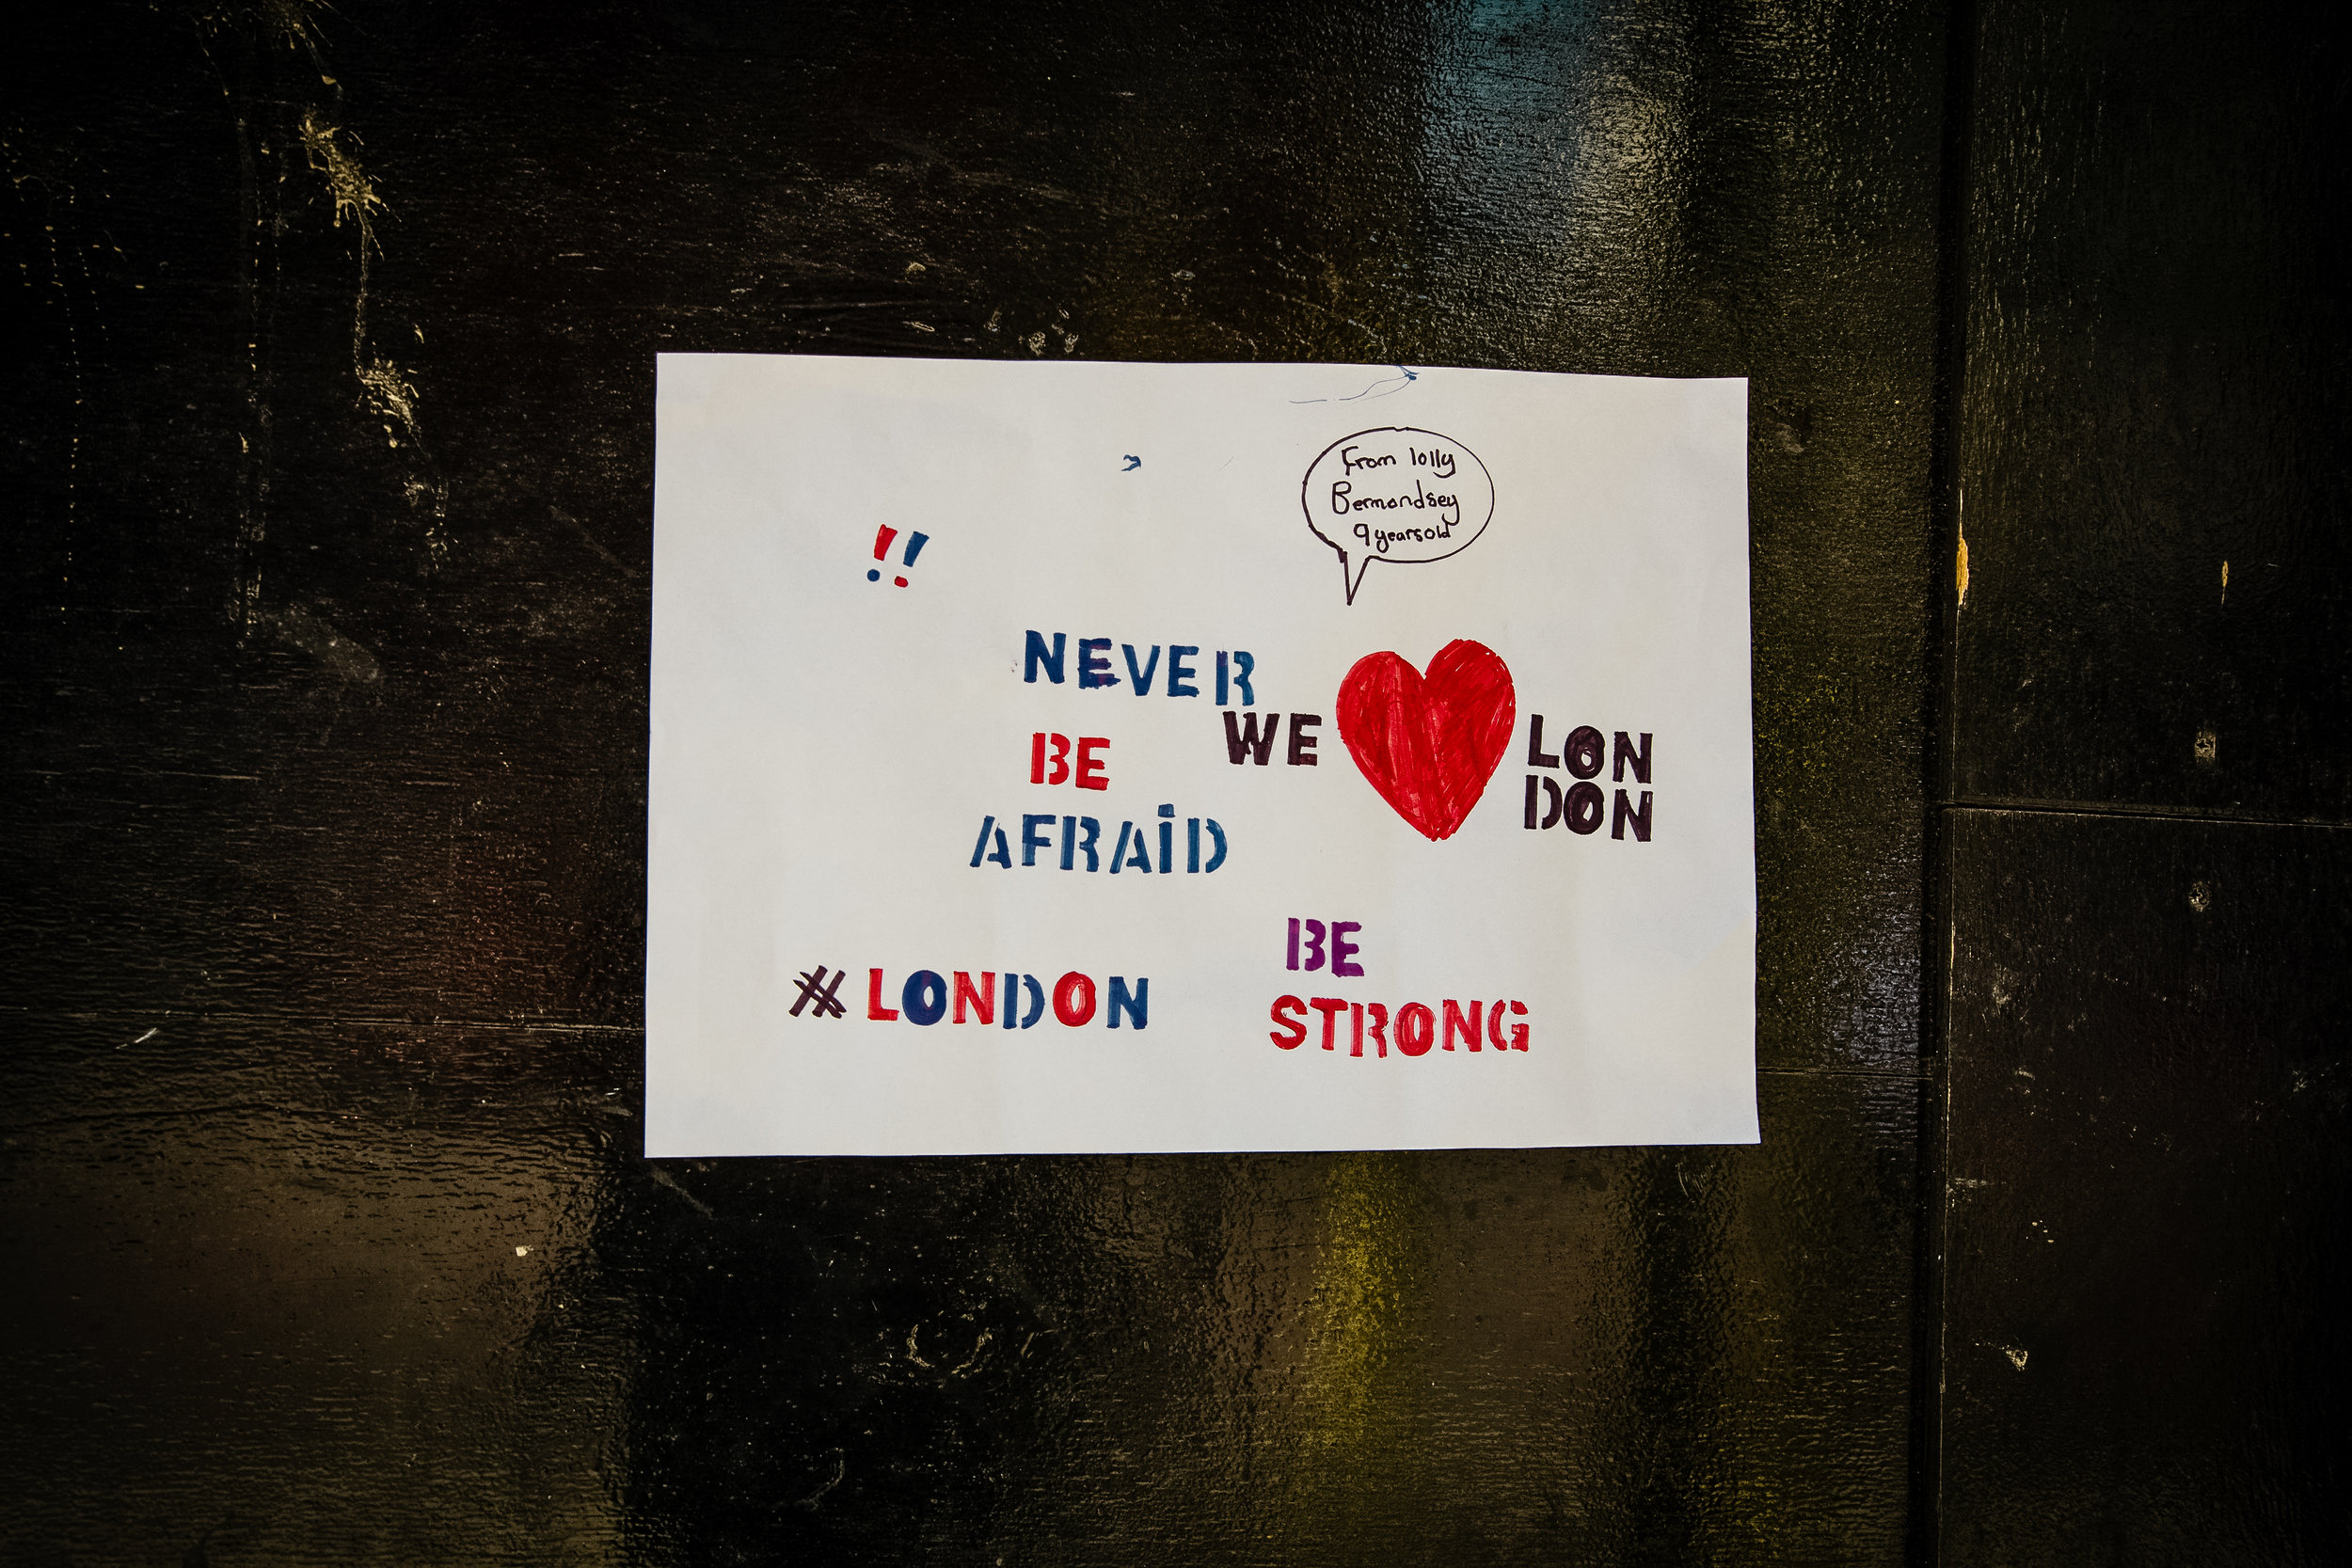 Signs like this were posted all over. London is not a city to be easily cowed.